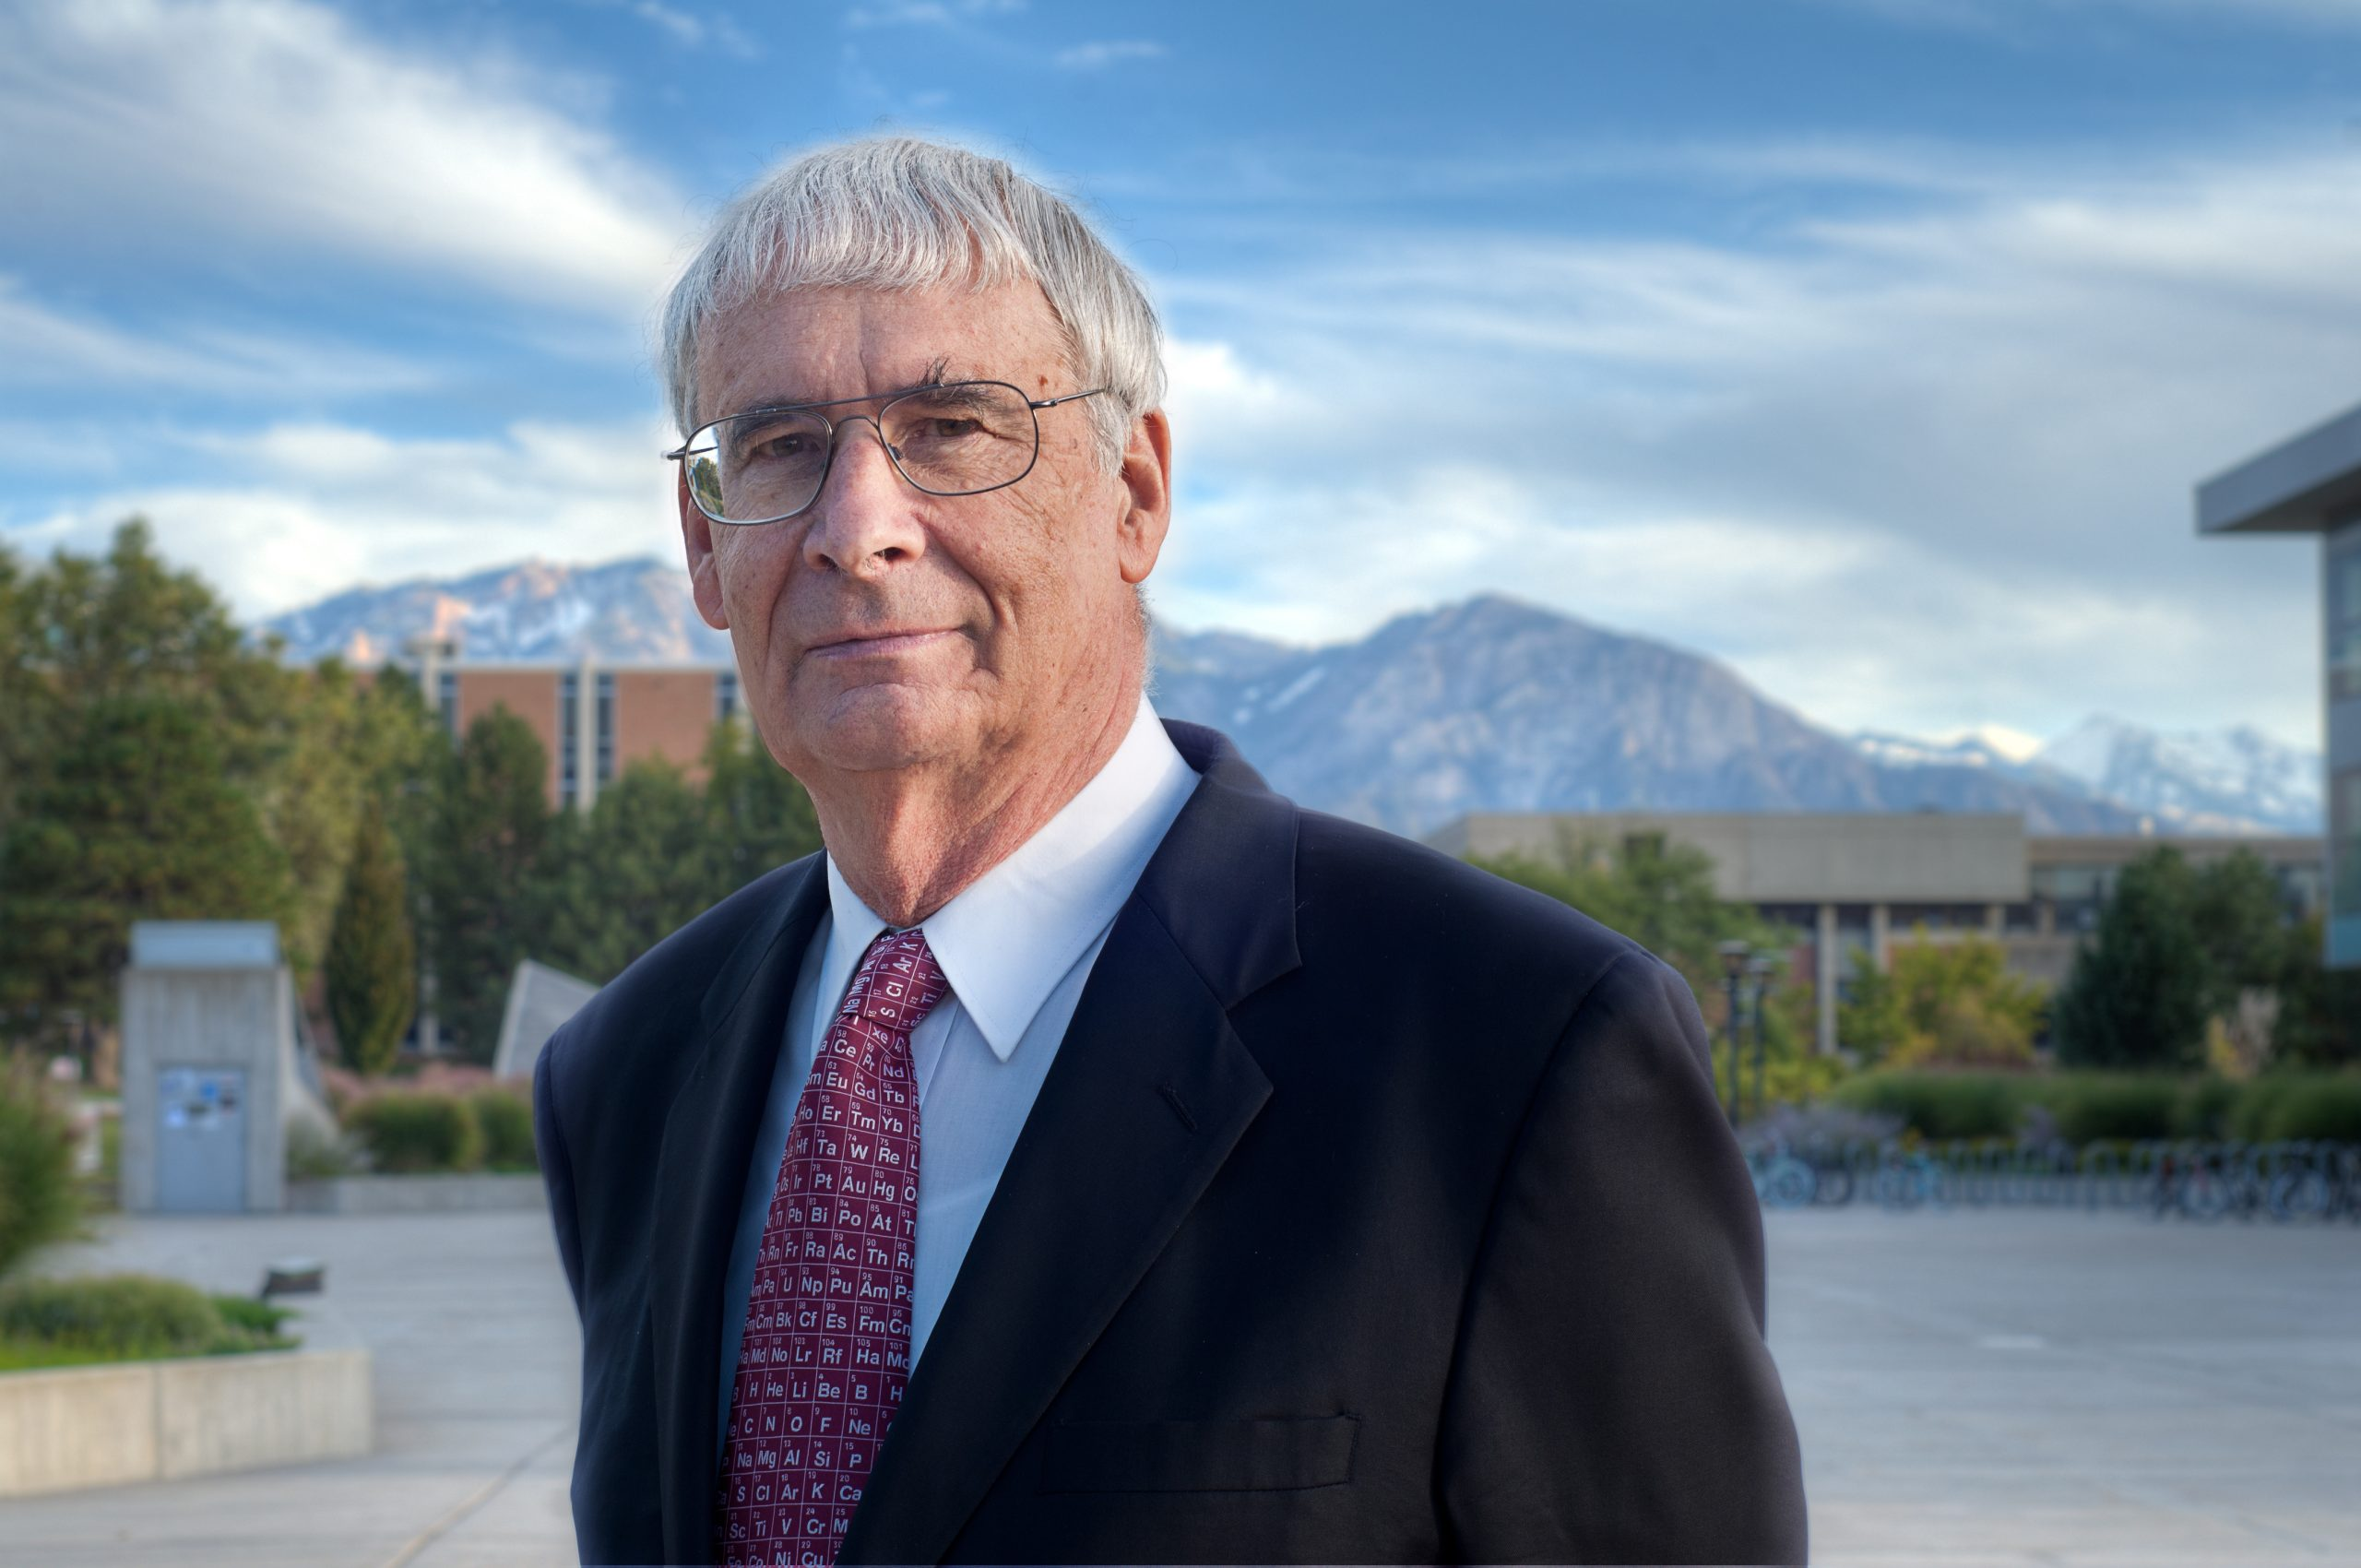 Peter Stang, distinguished professor of chemistry and winner of the National Medal of Science